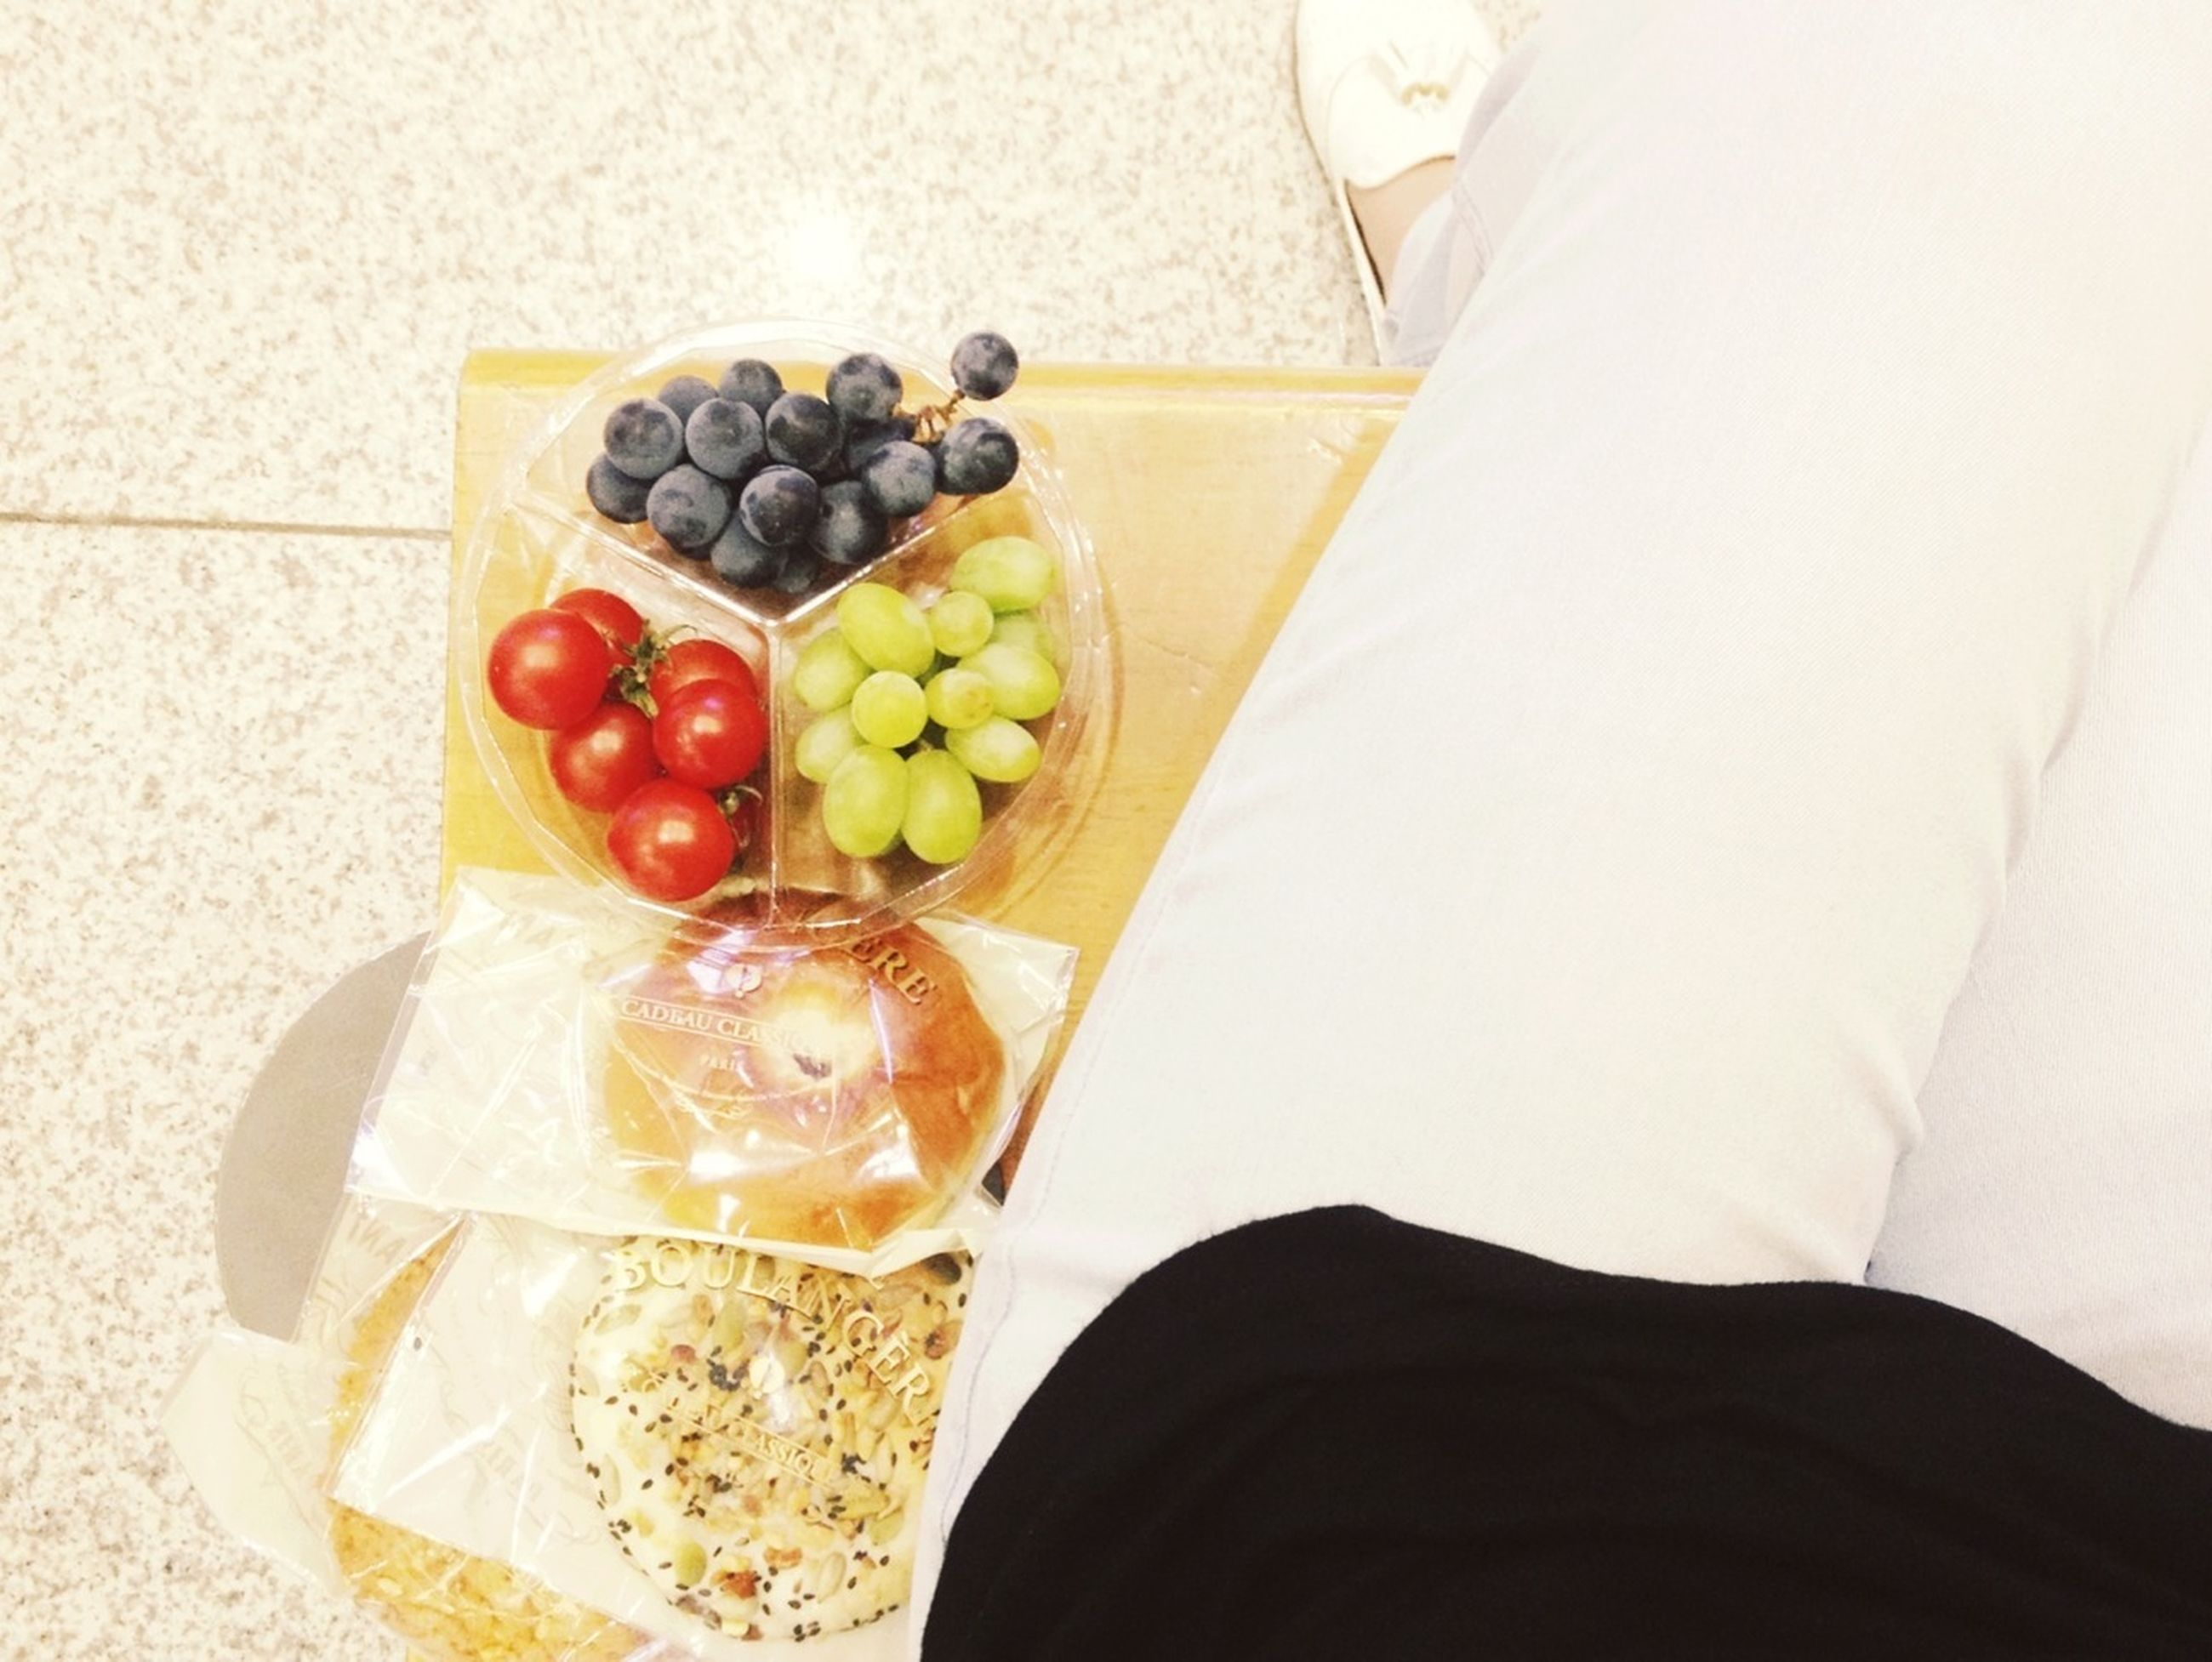 food and drink, food, indoors, freshness, healthy eating, ready-to-eat, fruit, sweet food, indulgence, table, still life, dessert, plate, holding, refreshment, strawberry, drink